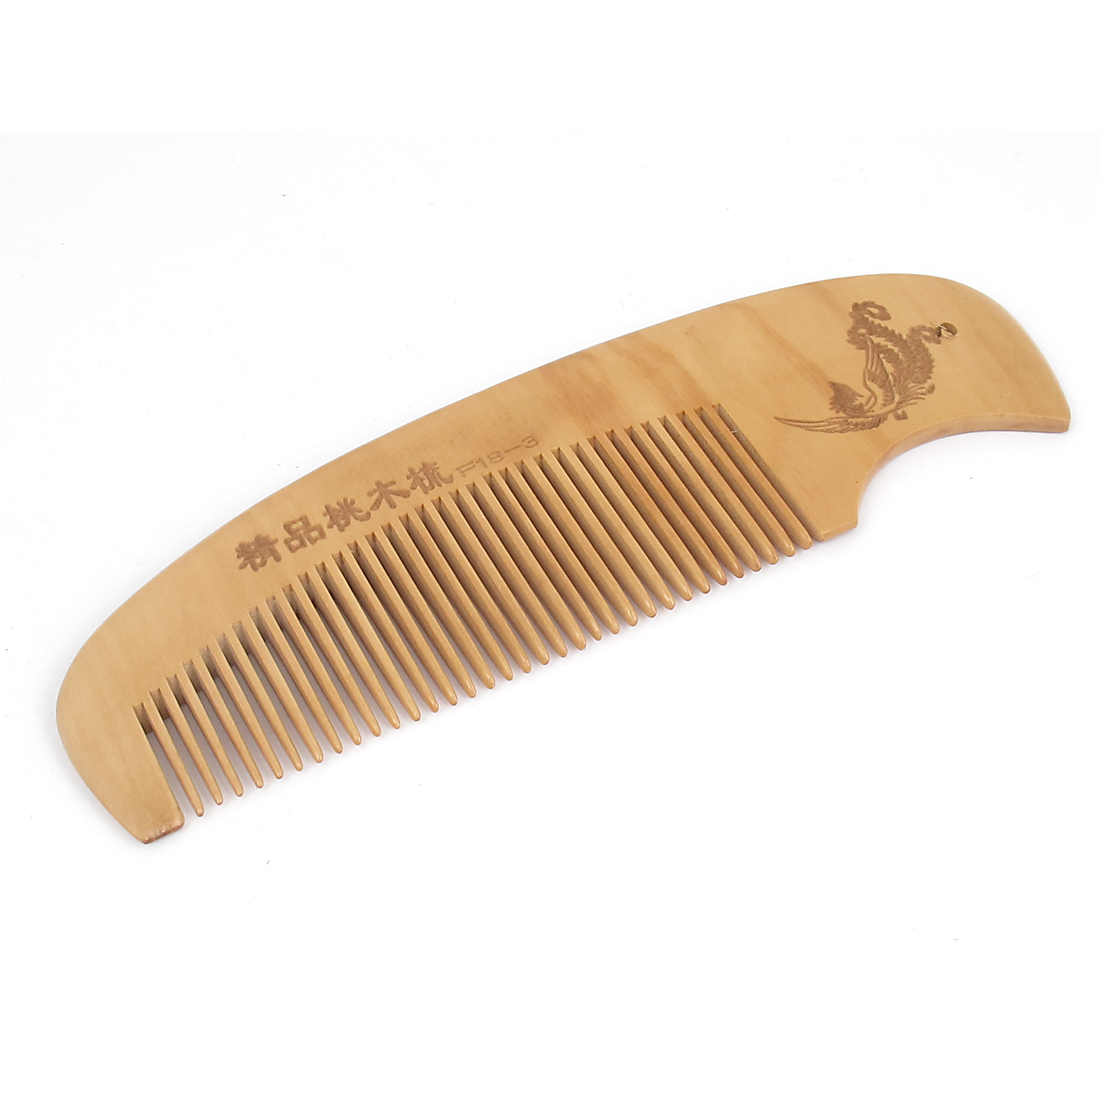 "6.7"" Length Healthy Hair Care Toothed Portable Natural Antistatic lightweight Handle Peach Wooden Comb for Ladies Gentlemen"